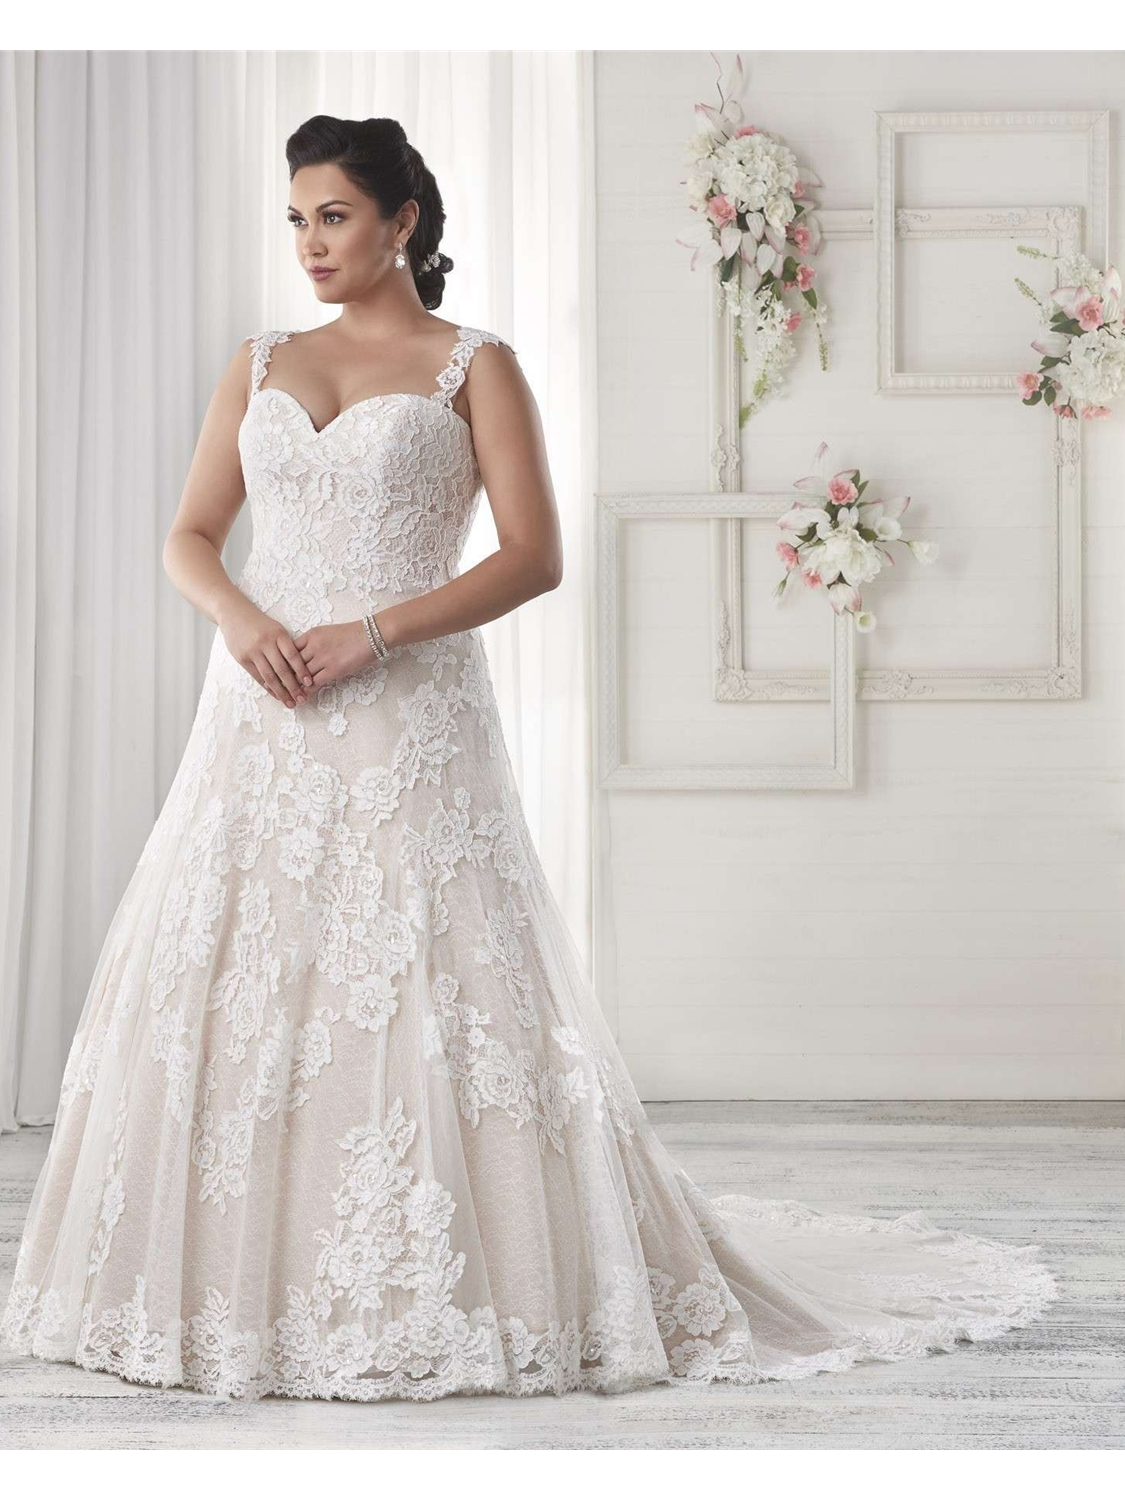 Unforgettable by Bonny Wedding Dress Style 1603 | House of Brides